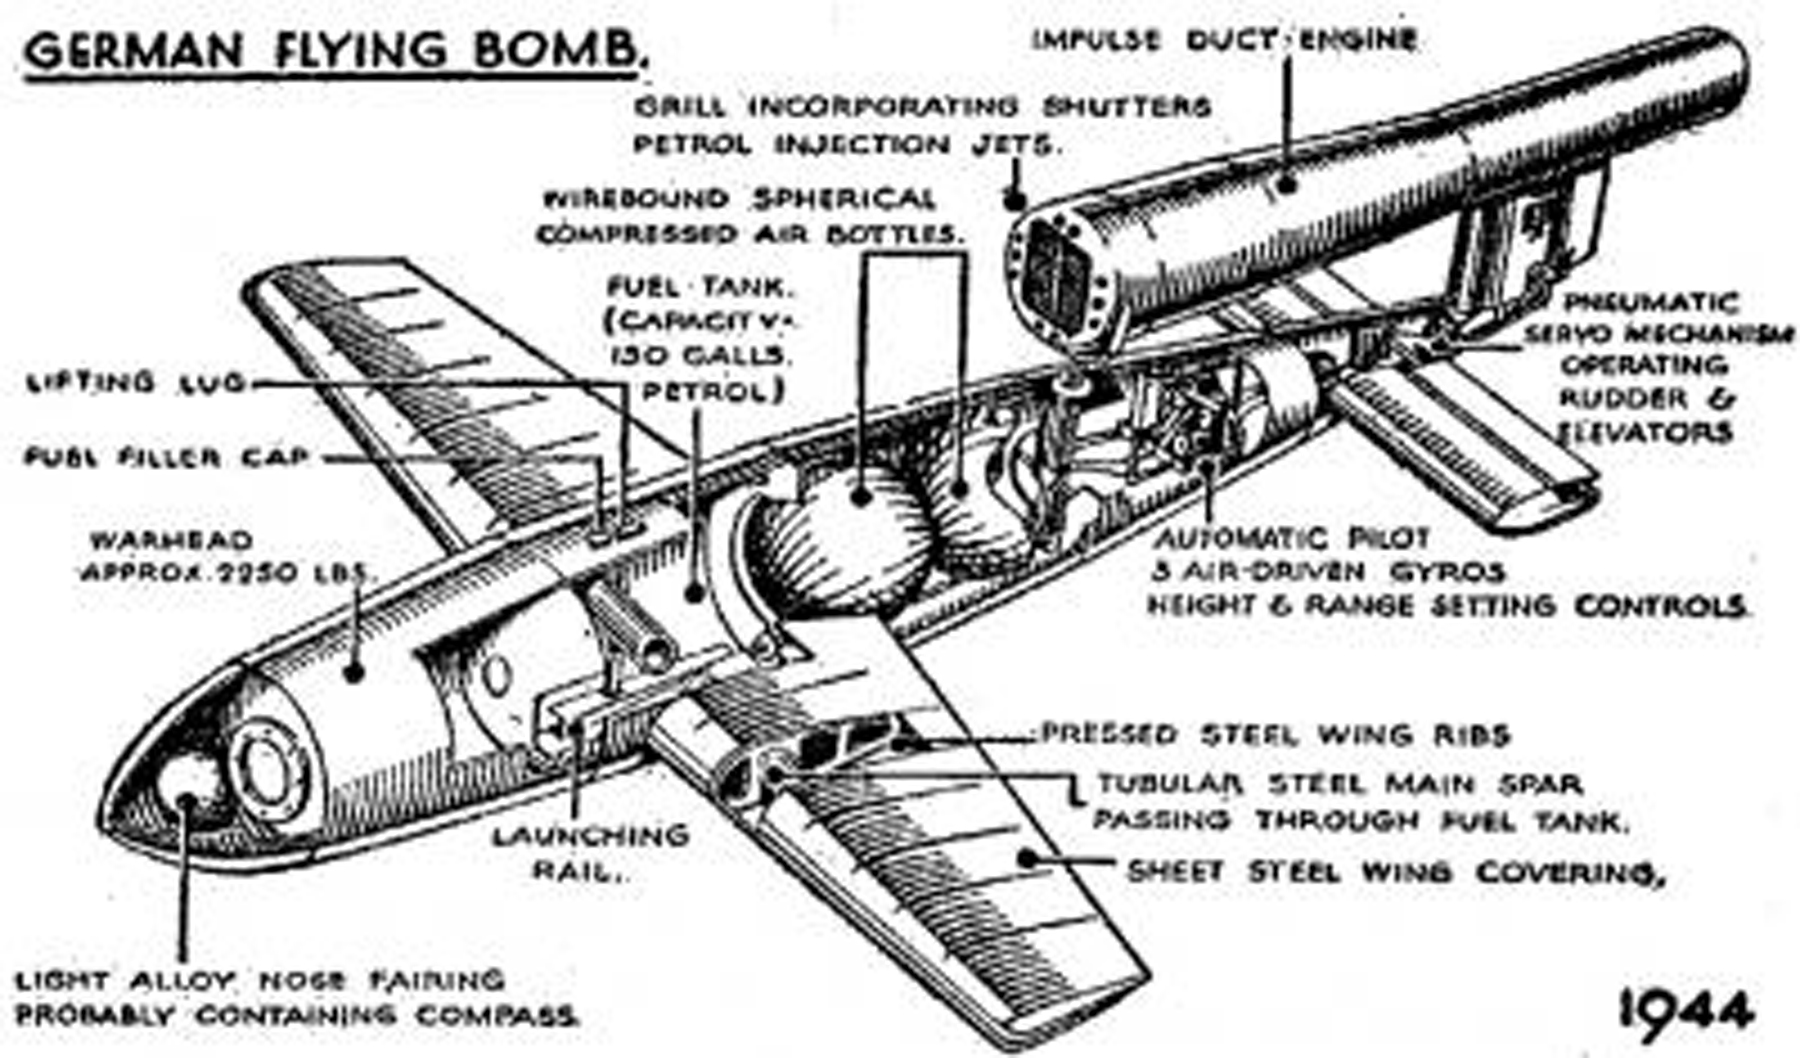 The V1 Flying Bomb